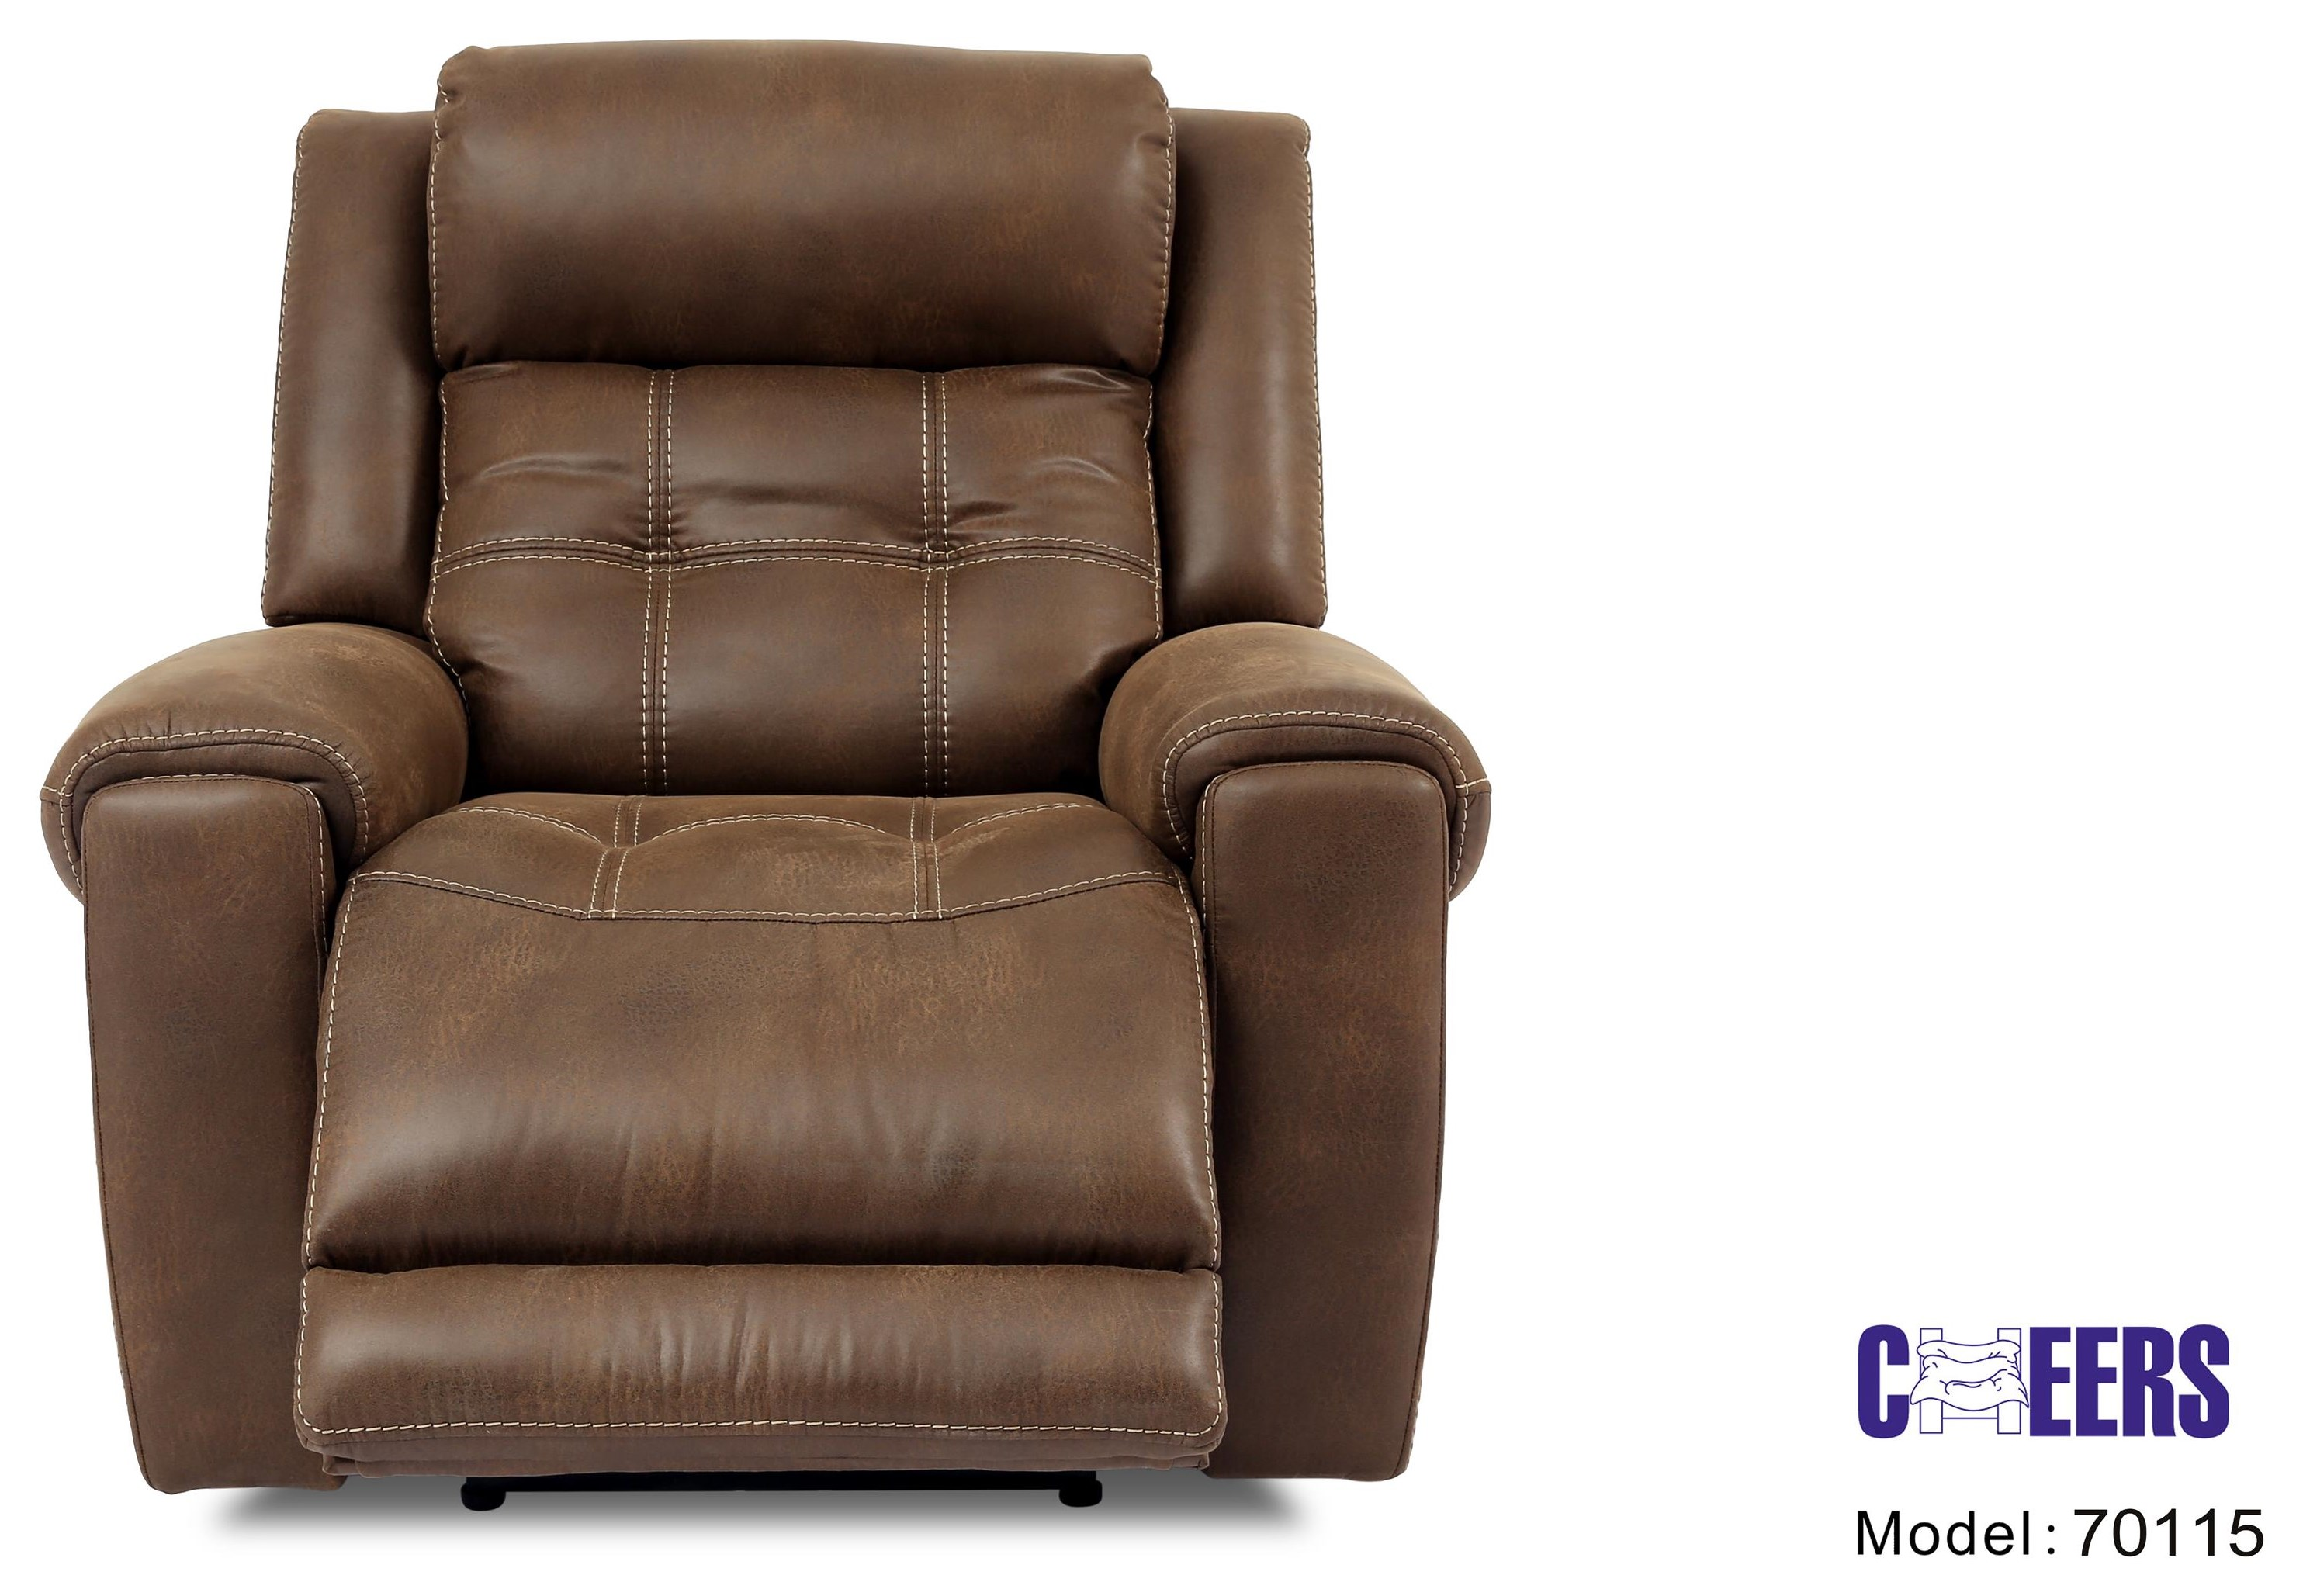 70115 Power Recliner by Cheers at Westrich Furniture & Appliances